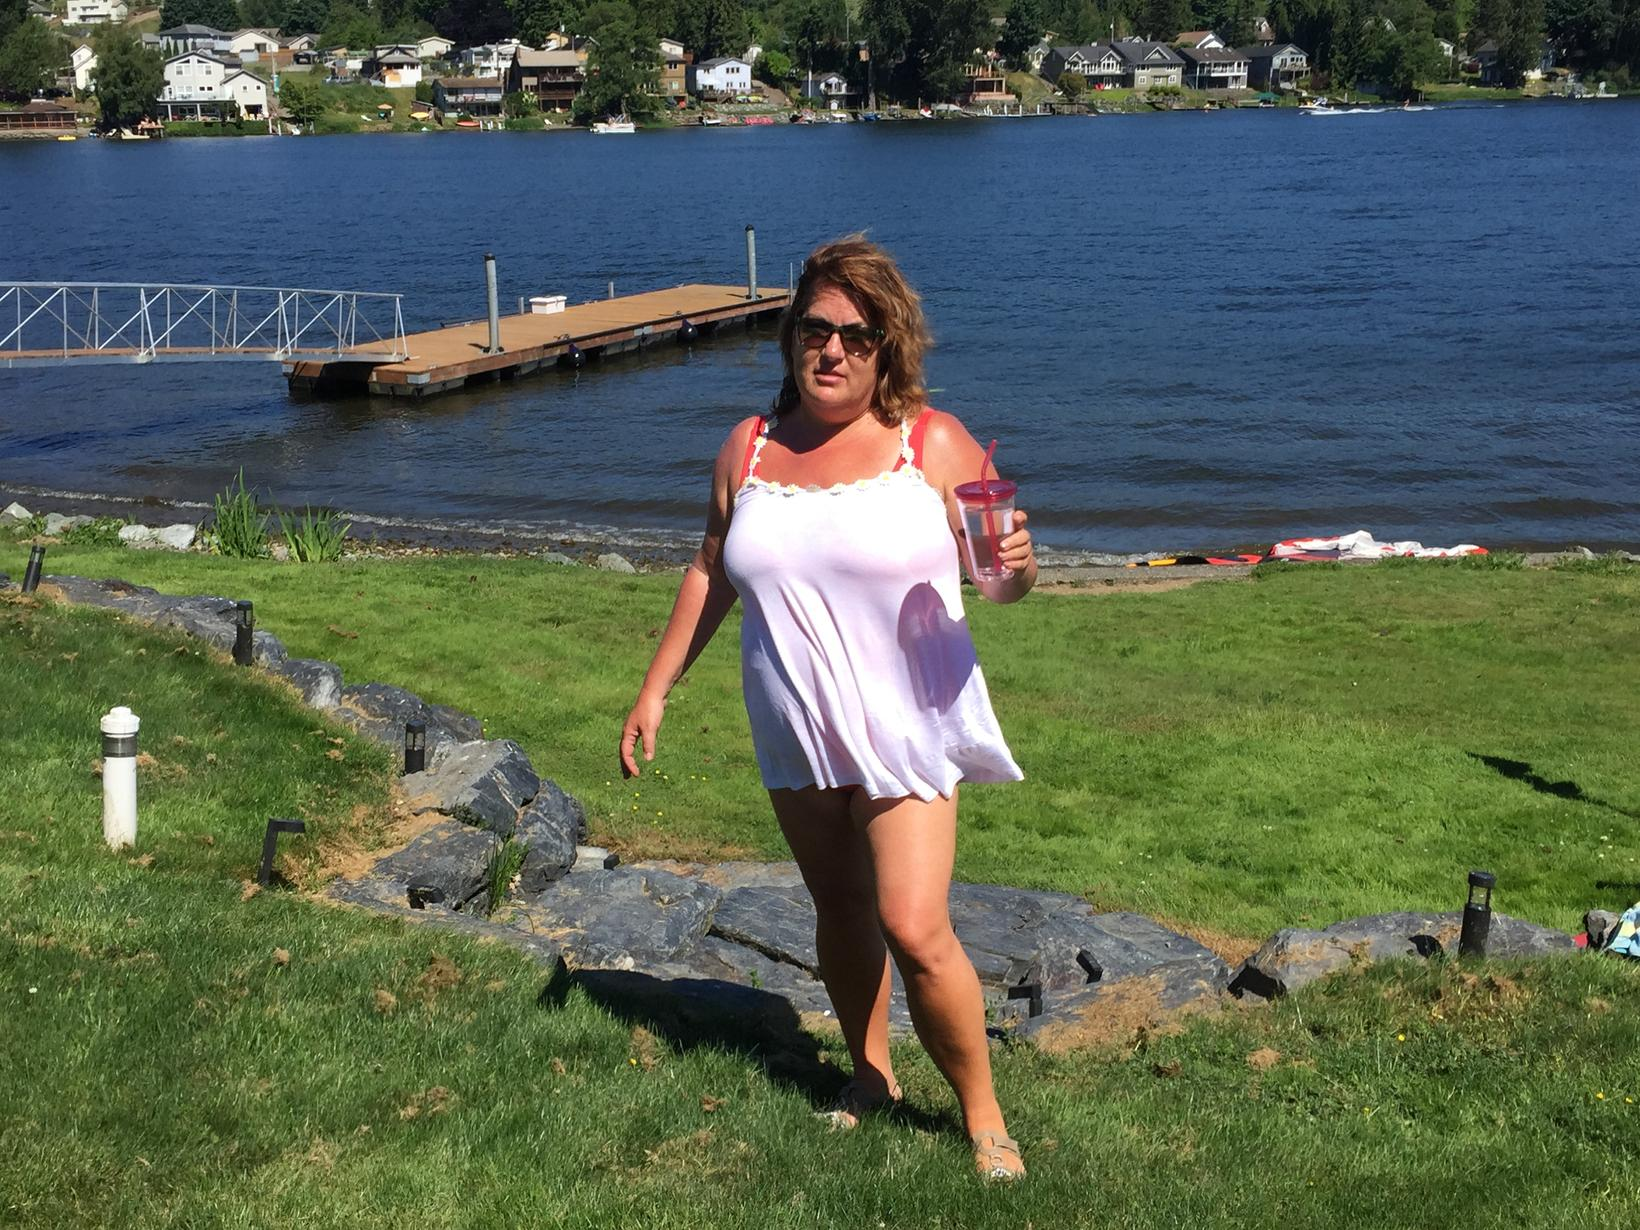 Julie-ann from Vancouver, British Columbia, Canada